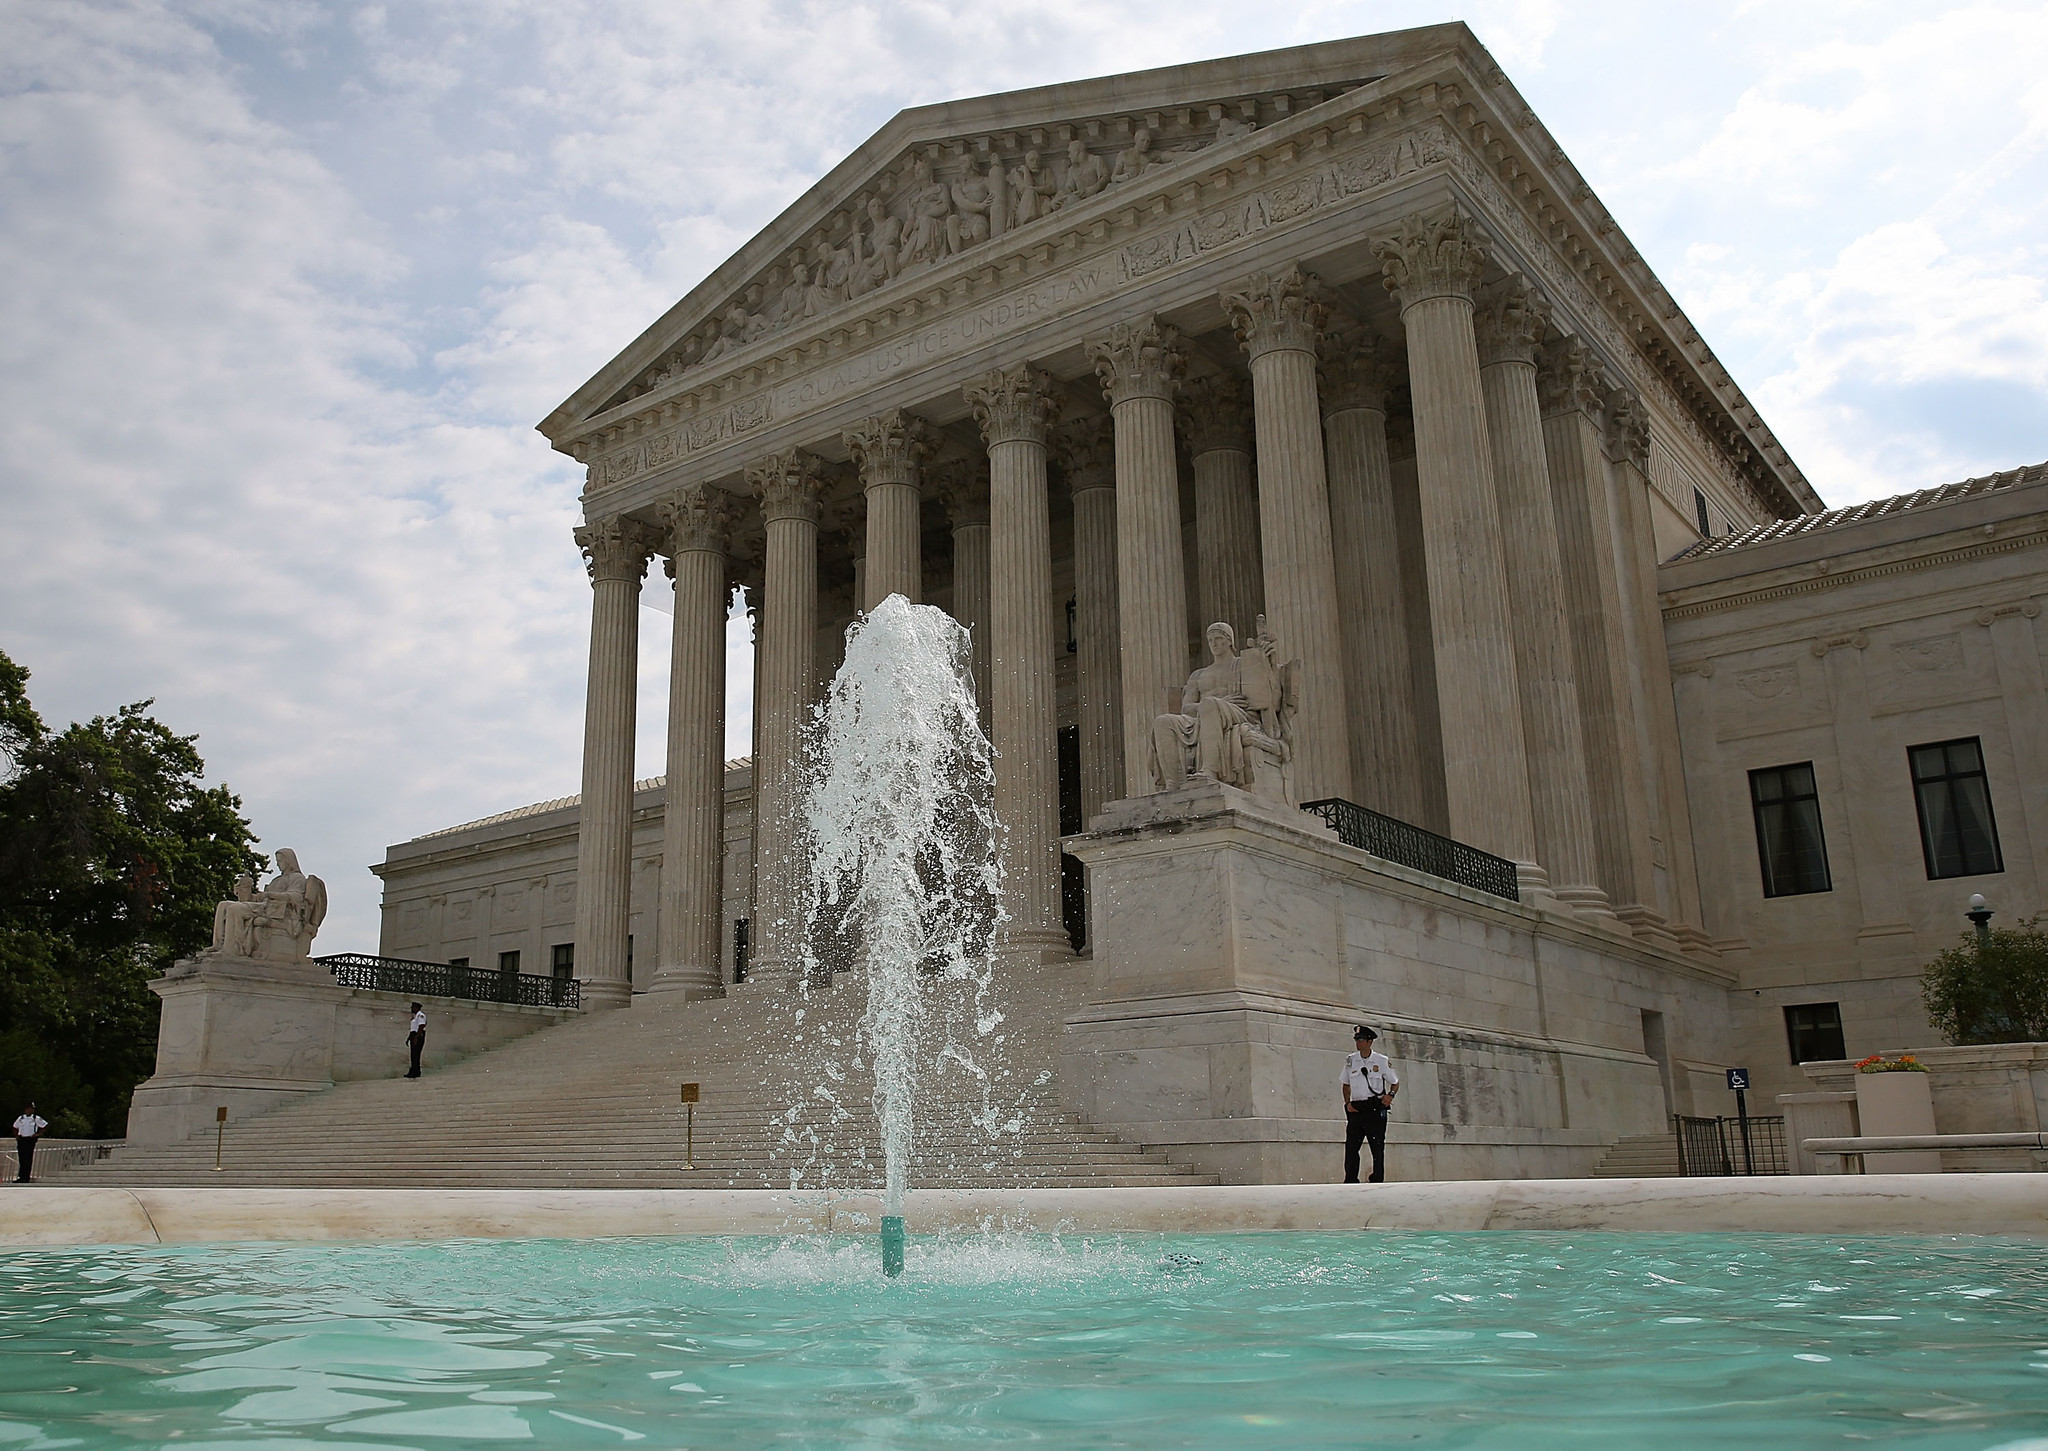 Supreme Court set to make pivotal rulings on abortion, affirmative action and immigration